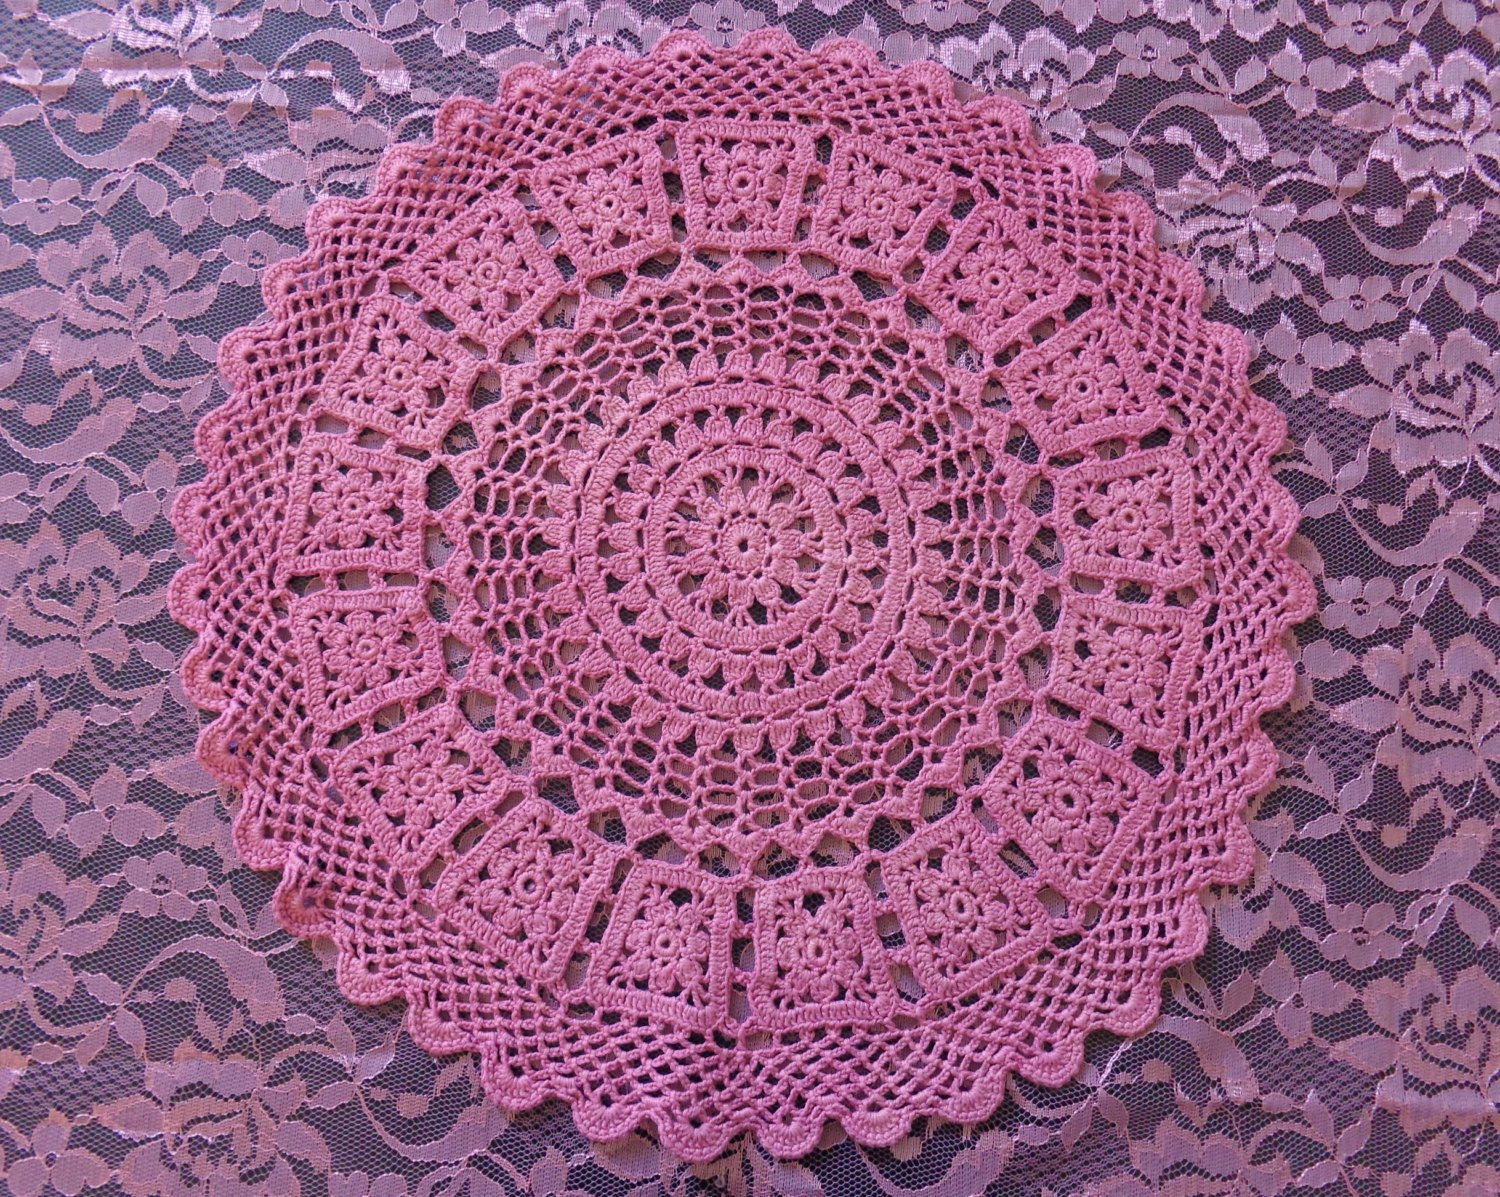 Lace Doilies Fabric Awesome Round Hand Dyed Pink Crochet Doily Pink Fabric Lace Of Perfect 47 Ideas Lace Doilies Fabric